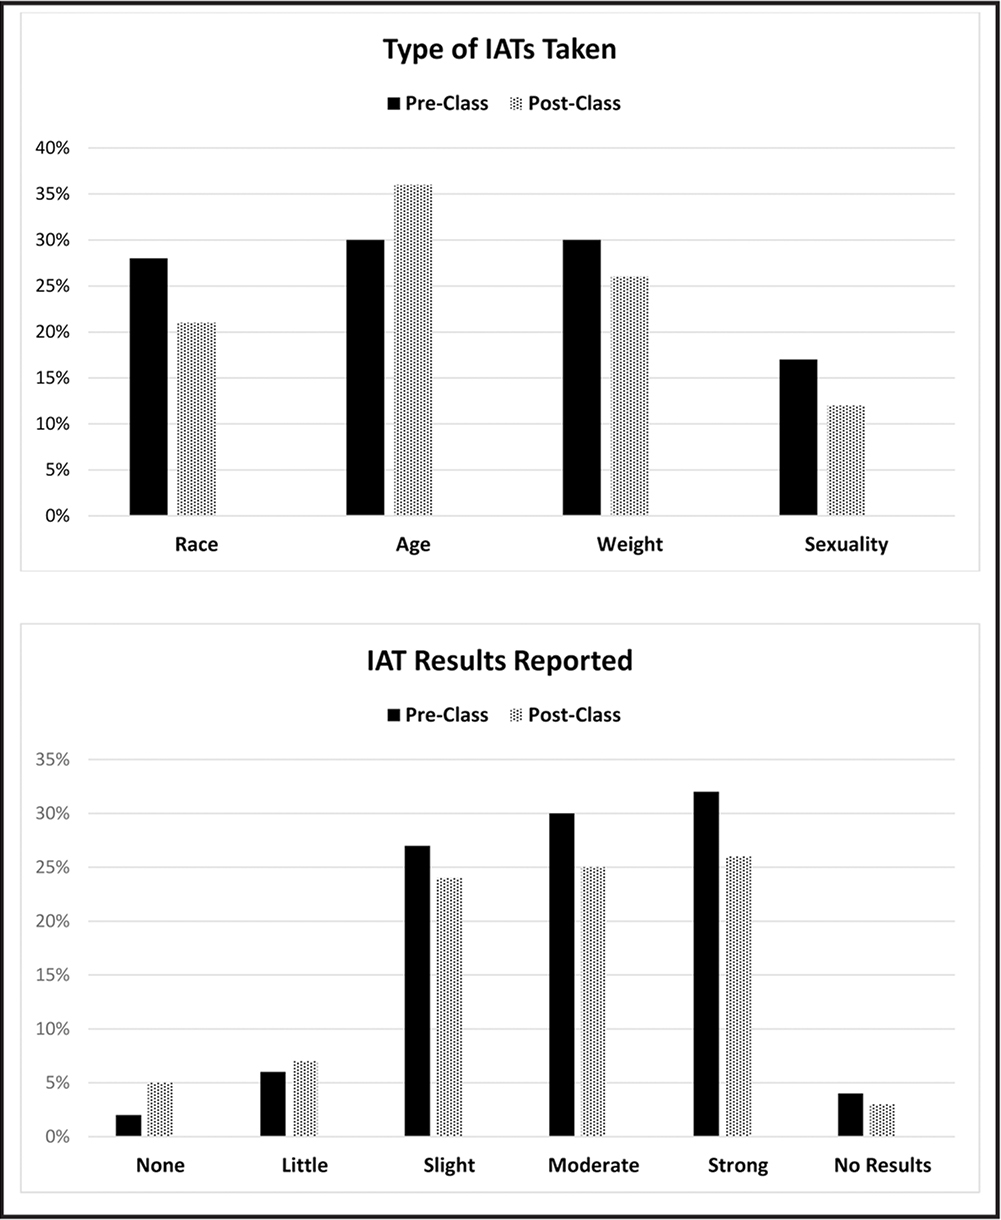 Types of Implicit Association Tests (IAT) taken and the preand postclass results. Stronger values suggest a higher likelihood of unconscious bias.